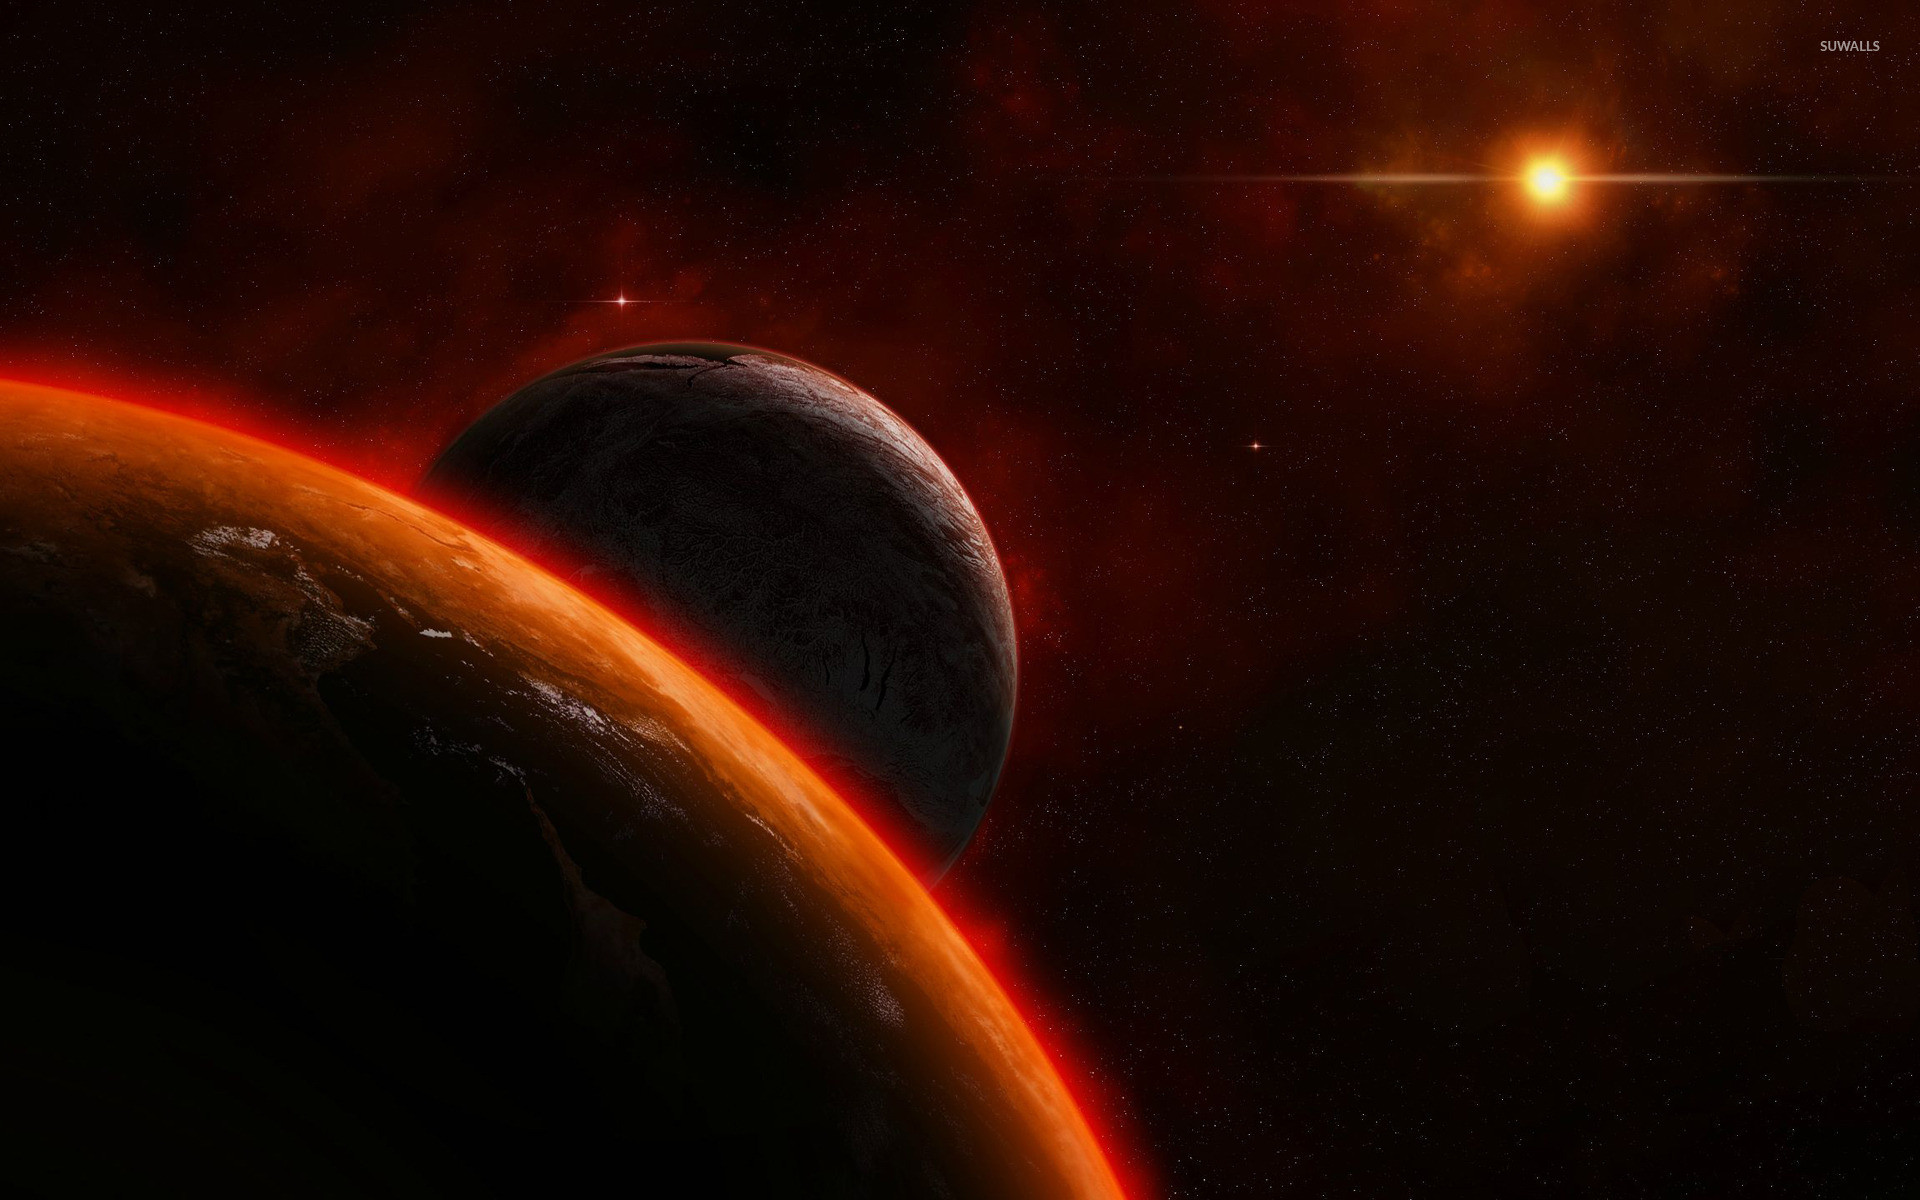 sun-and-planets-wallpaper-9